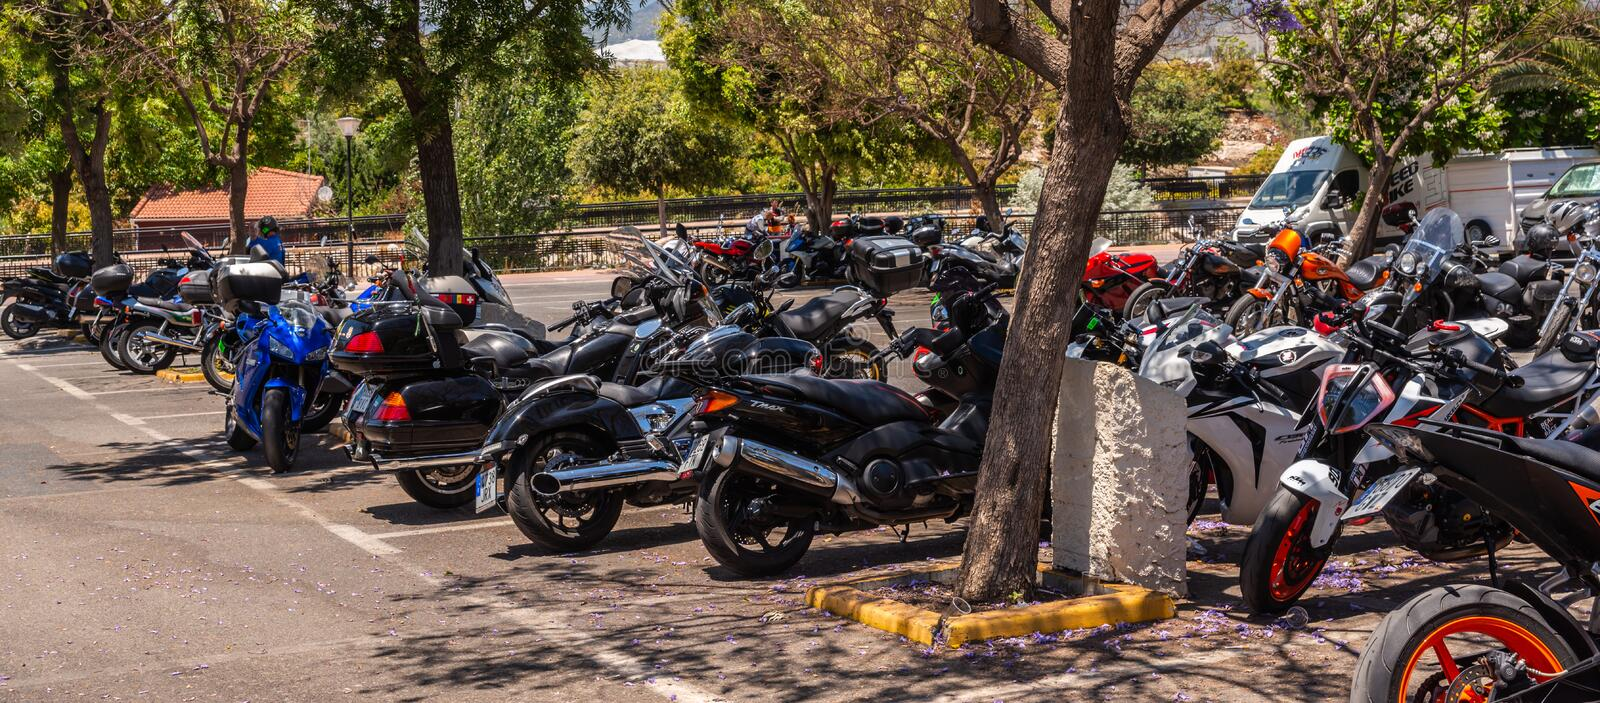 NERJA, SPAIN - JUNE 10, 2018 motorcycle rally in the famous Andalusian town of Nerja stock image